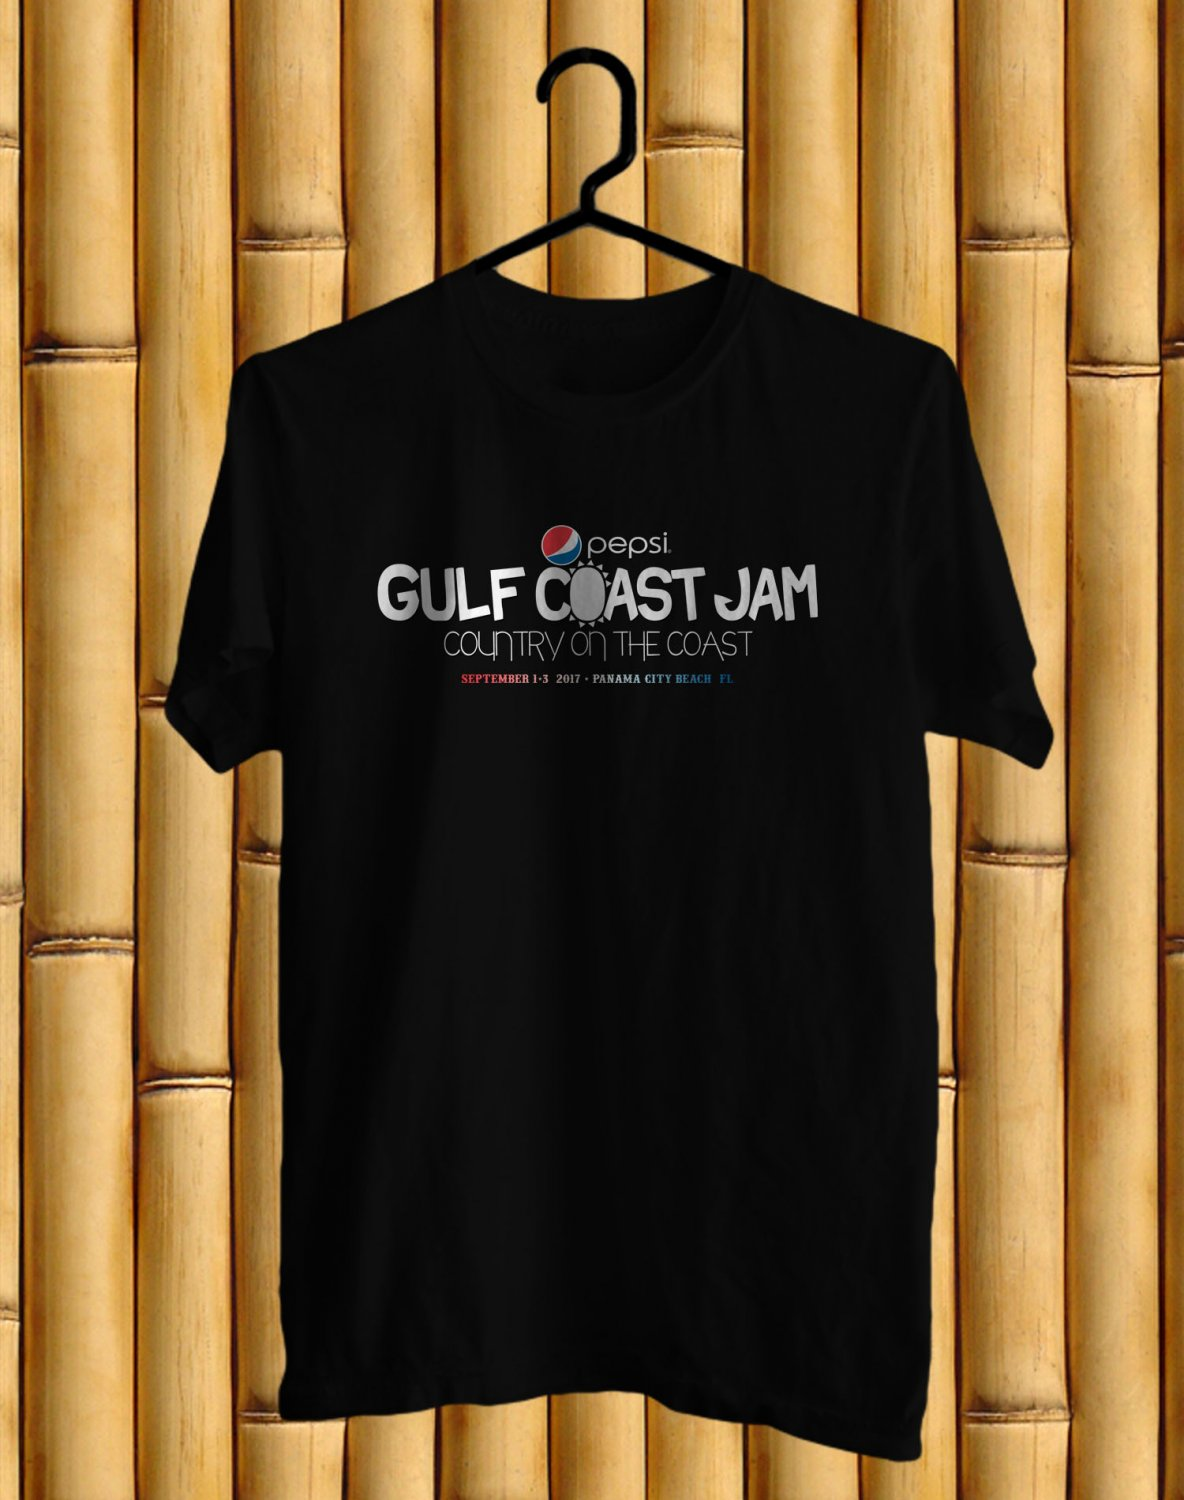 Pepsi Gulf Coast Country Jam 2017 Black Tee's Front Side by Complexart